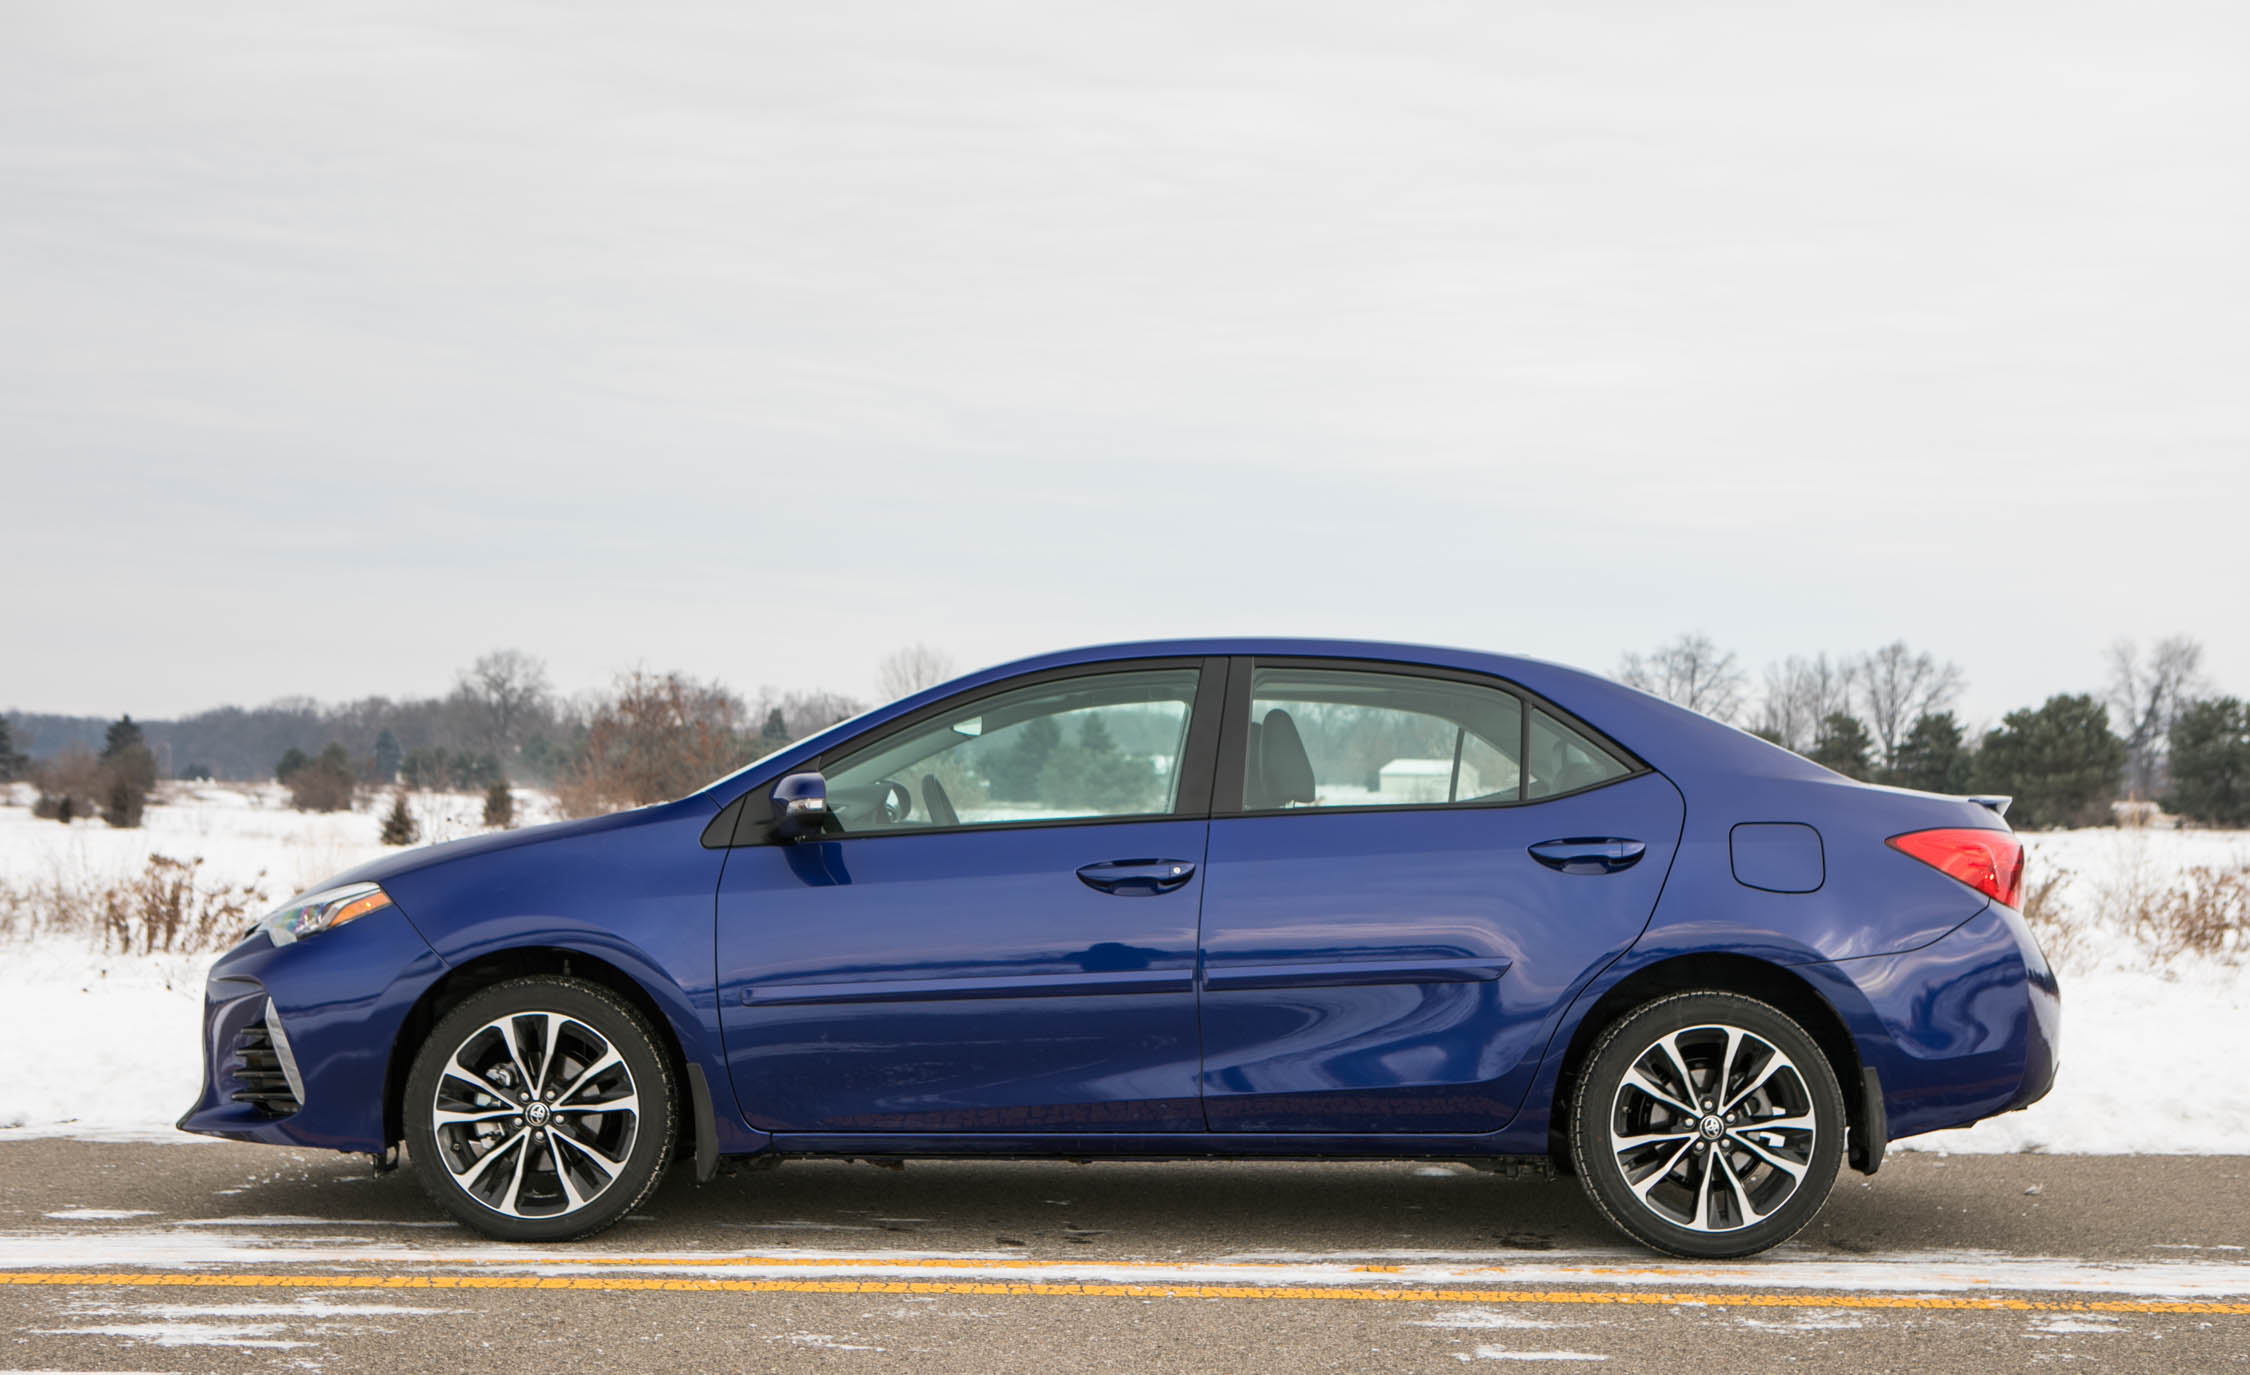 2017 Toyota Corolla XSE Exterior Side (View 62 of 75)